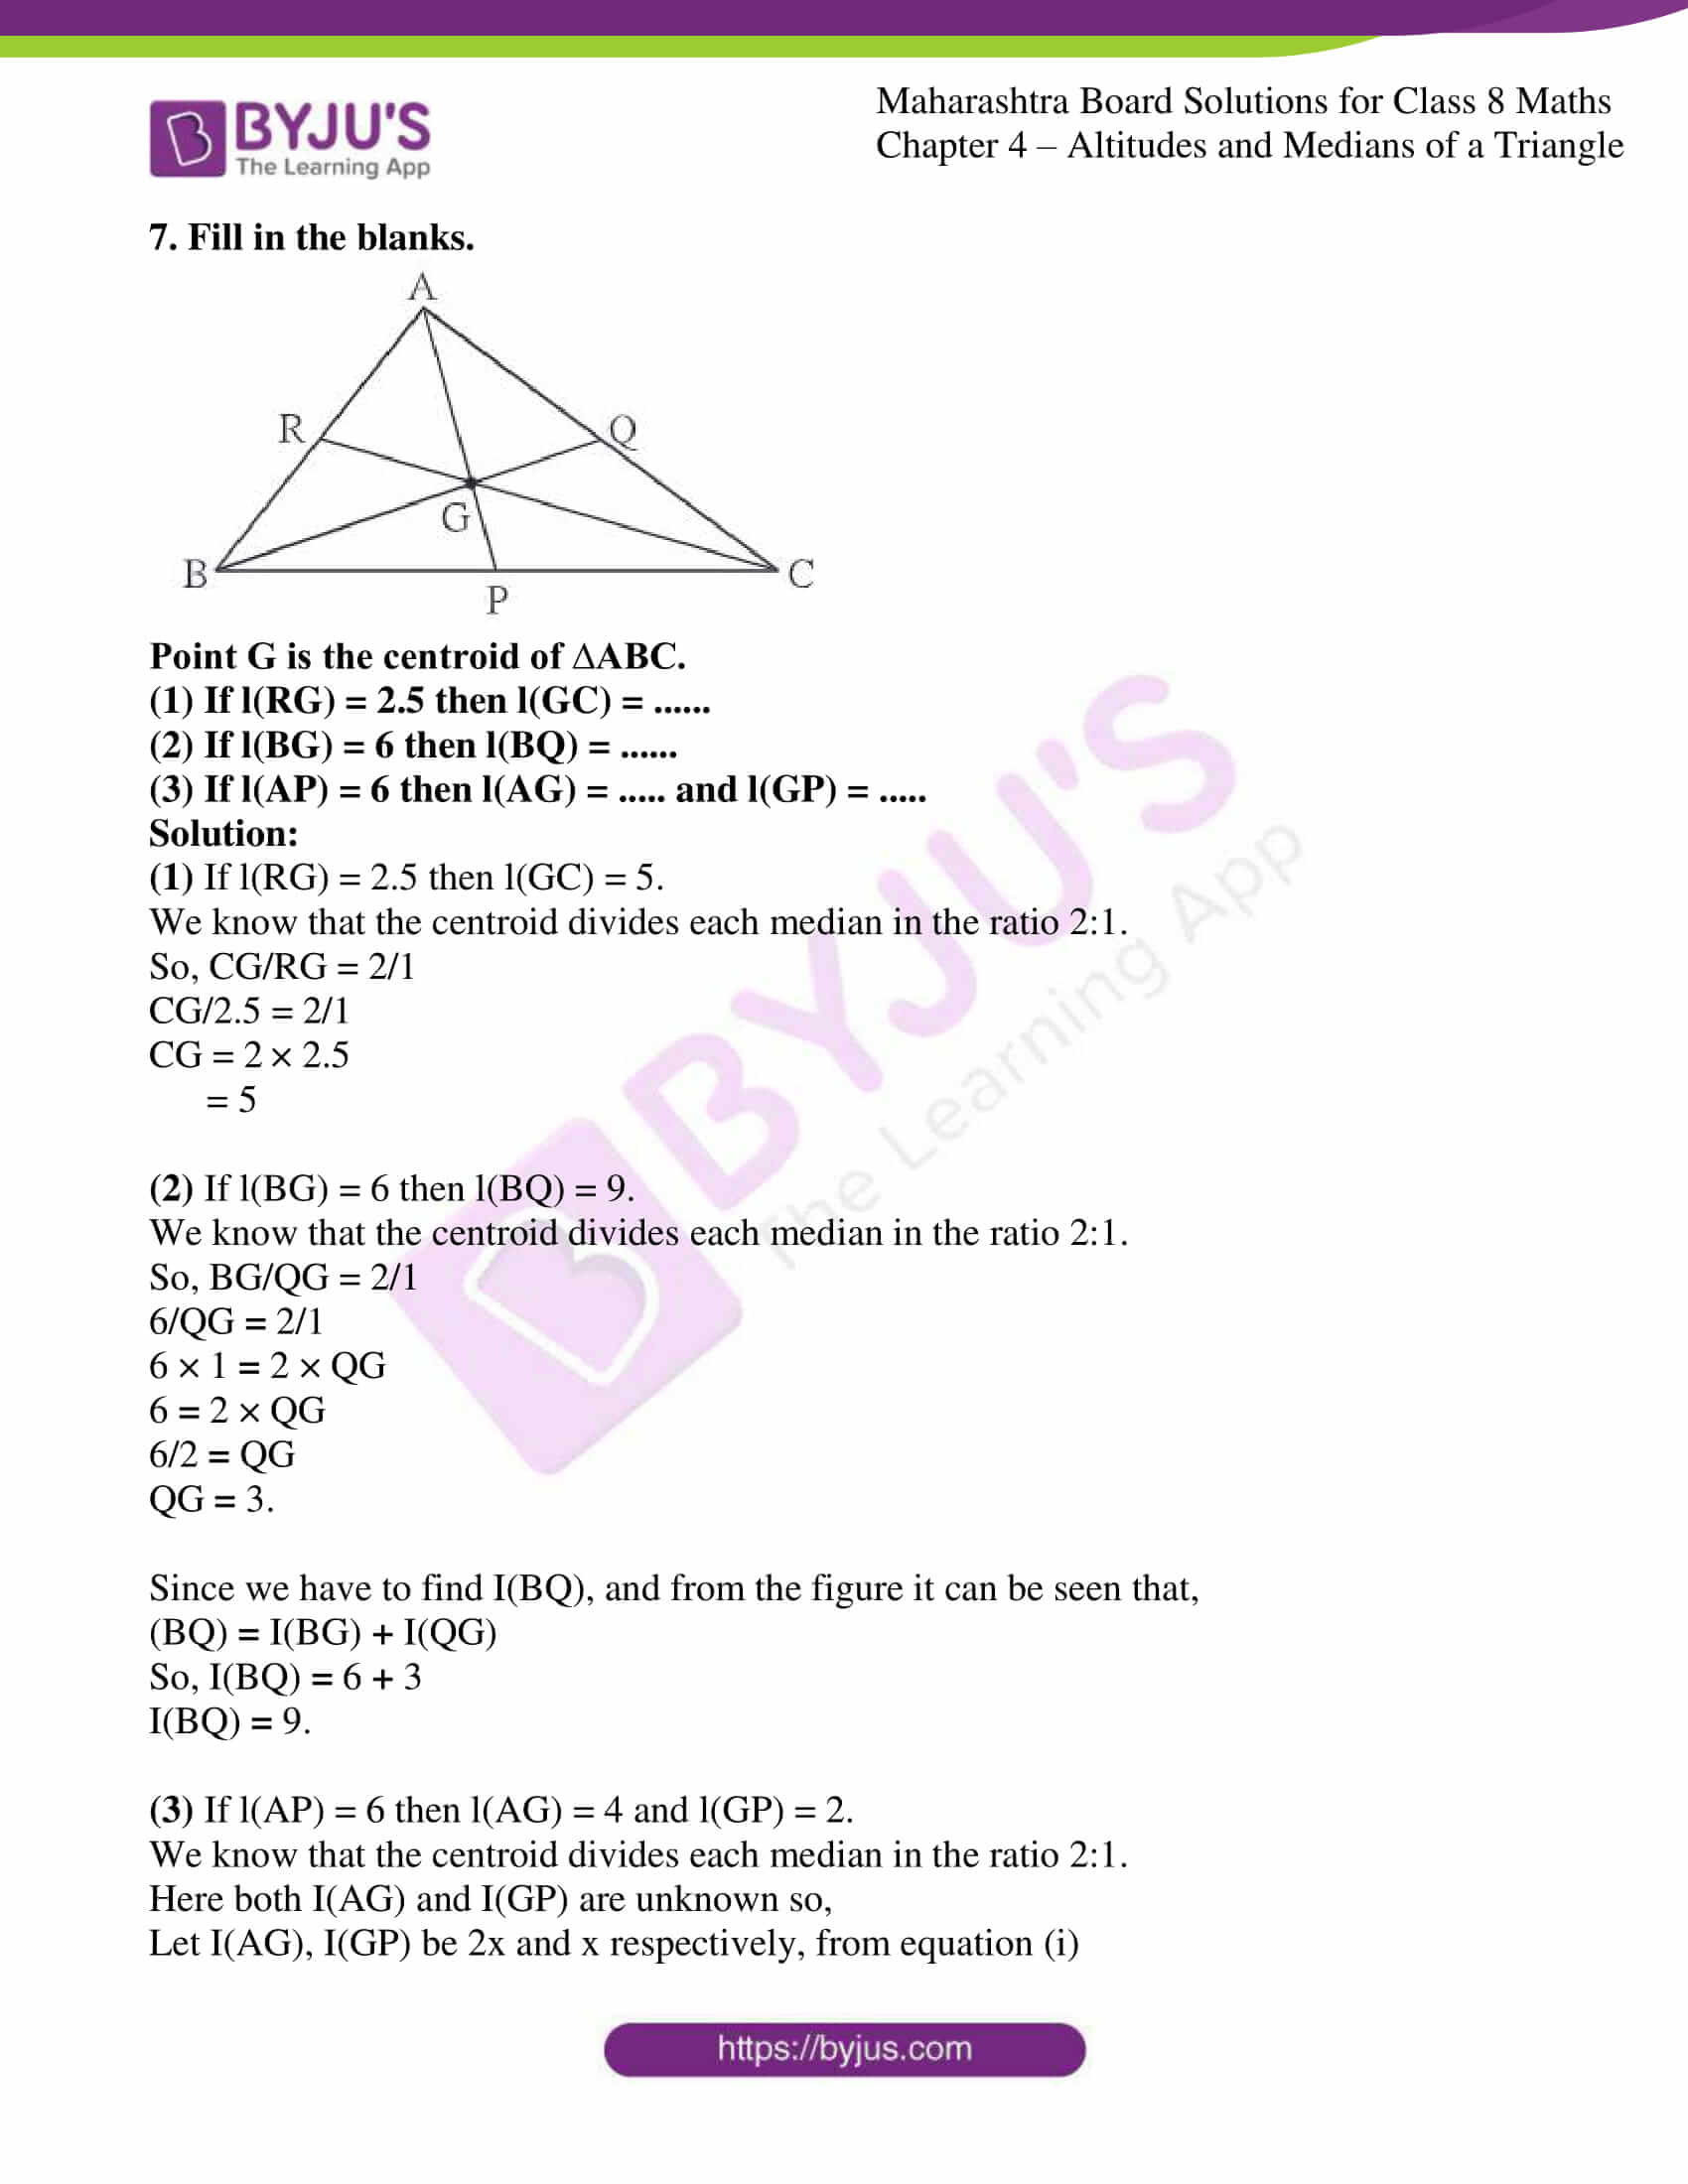 msbshse sol for class 8 maths chapter 4 5